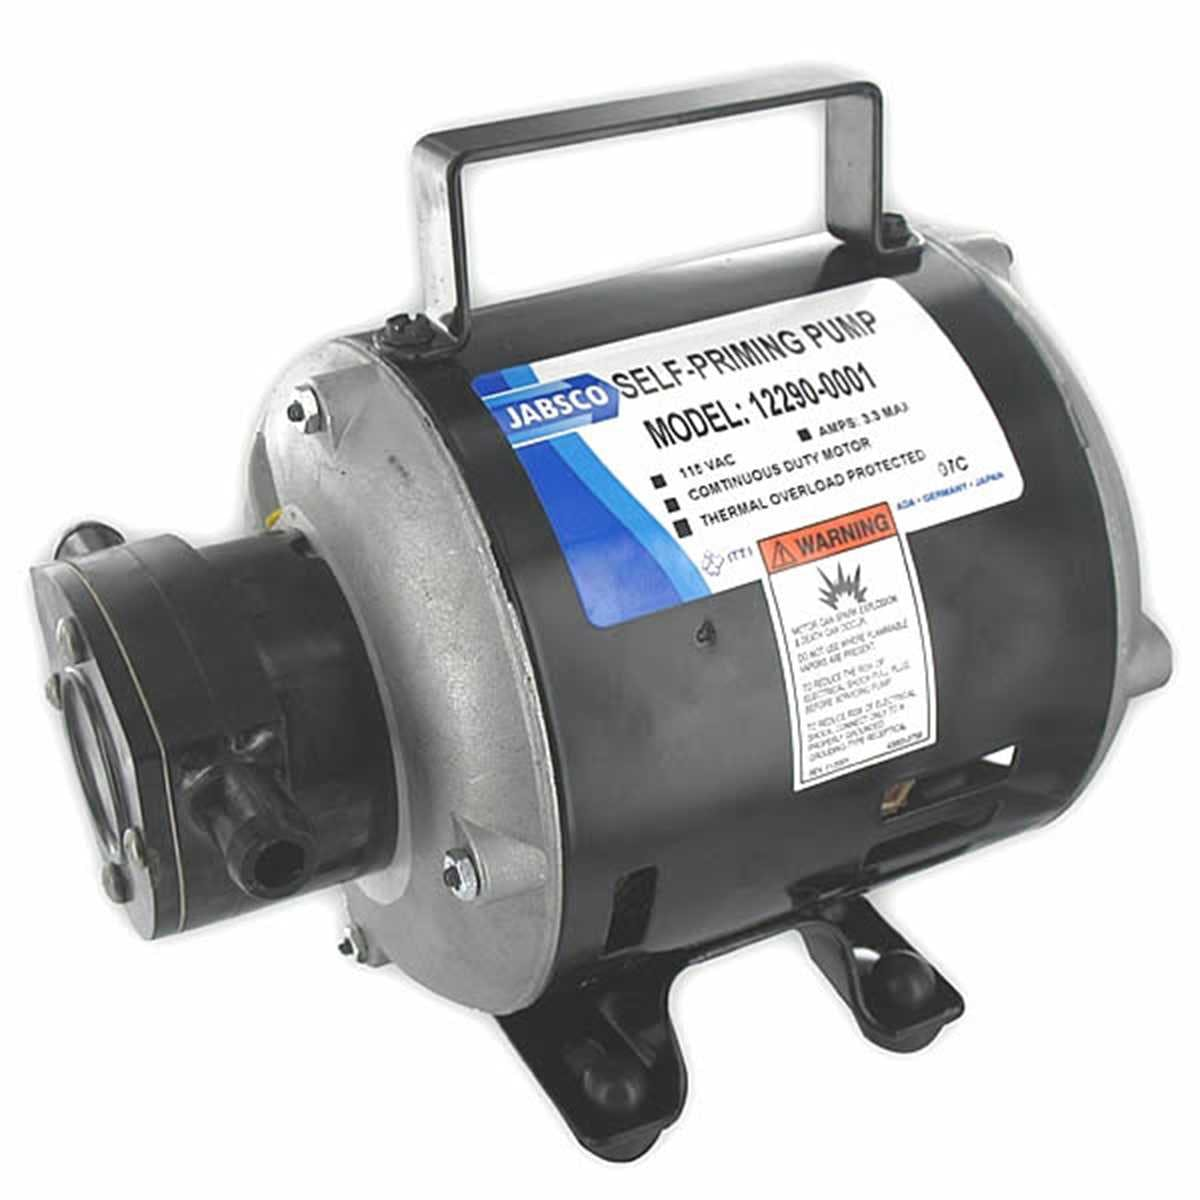 Jabsco 18680-1000 Sliding Vane Utility/Diesel Pump Sanitary pump sold by Janeice Products Co Inc.